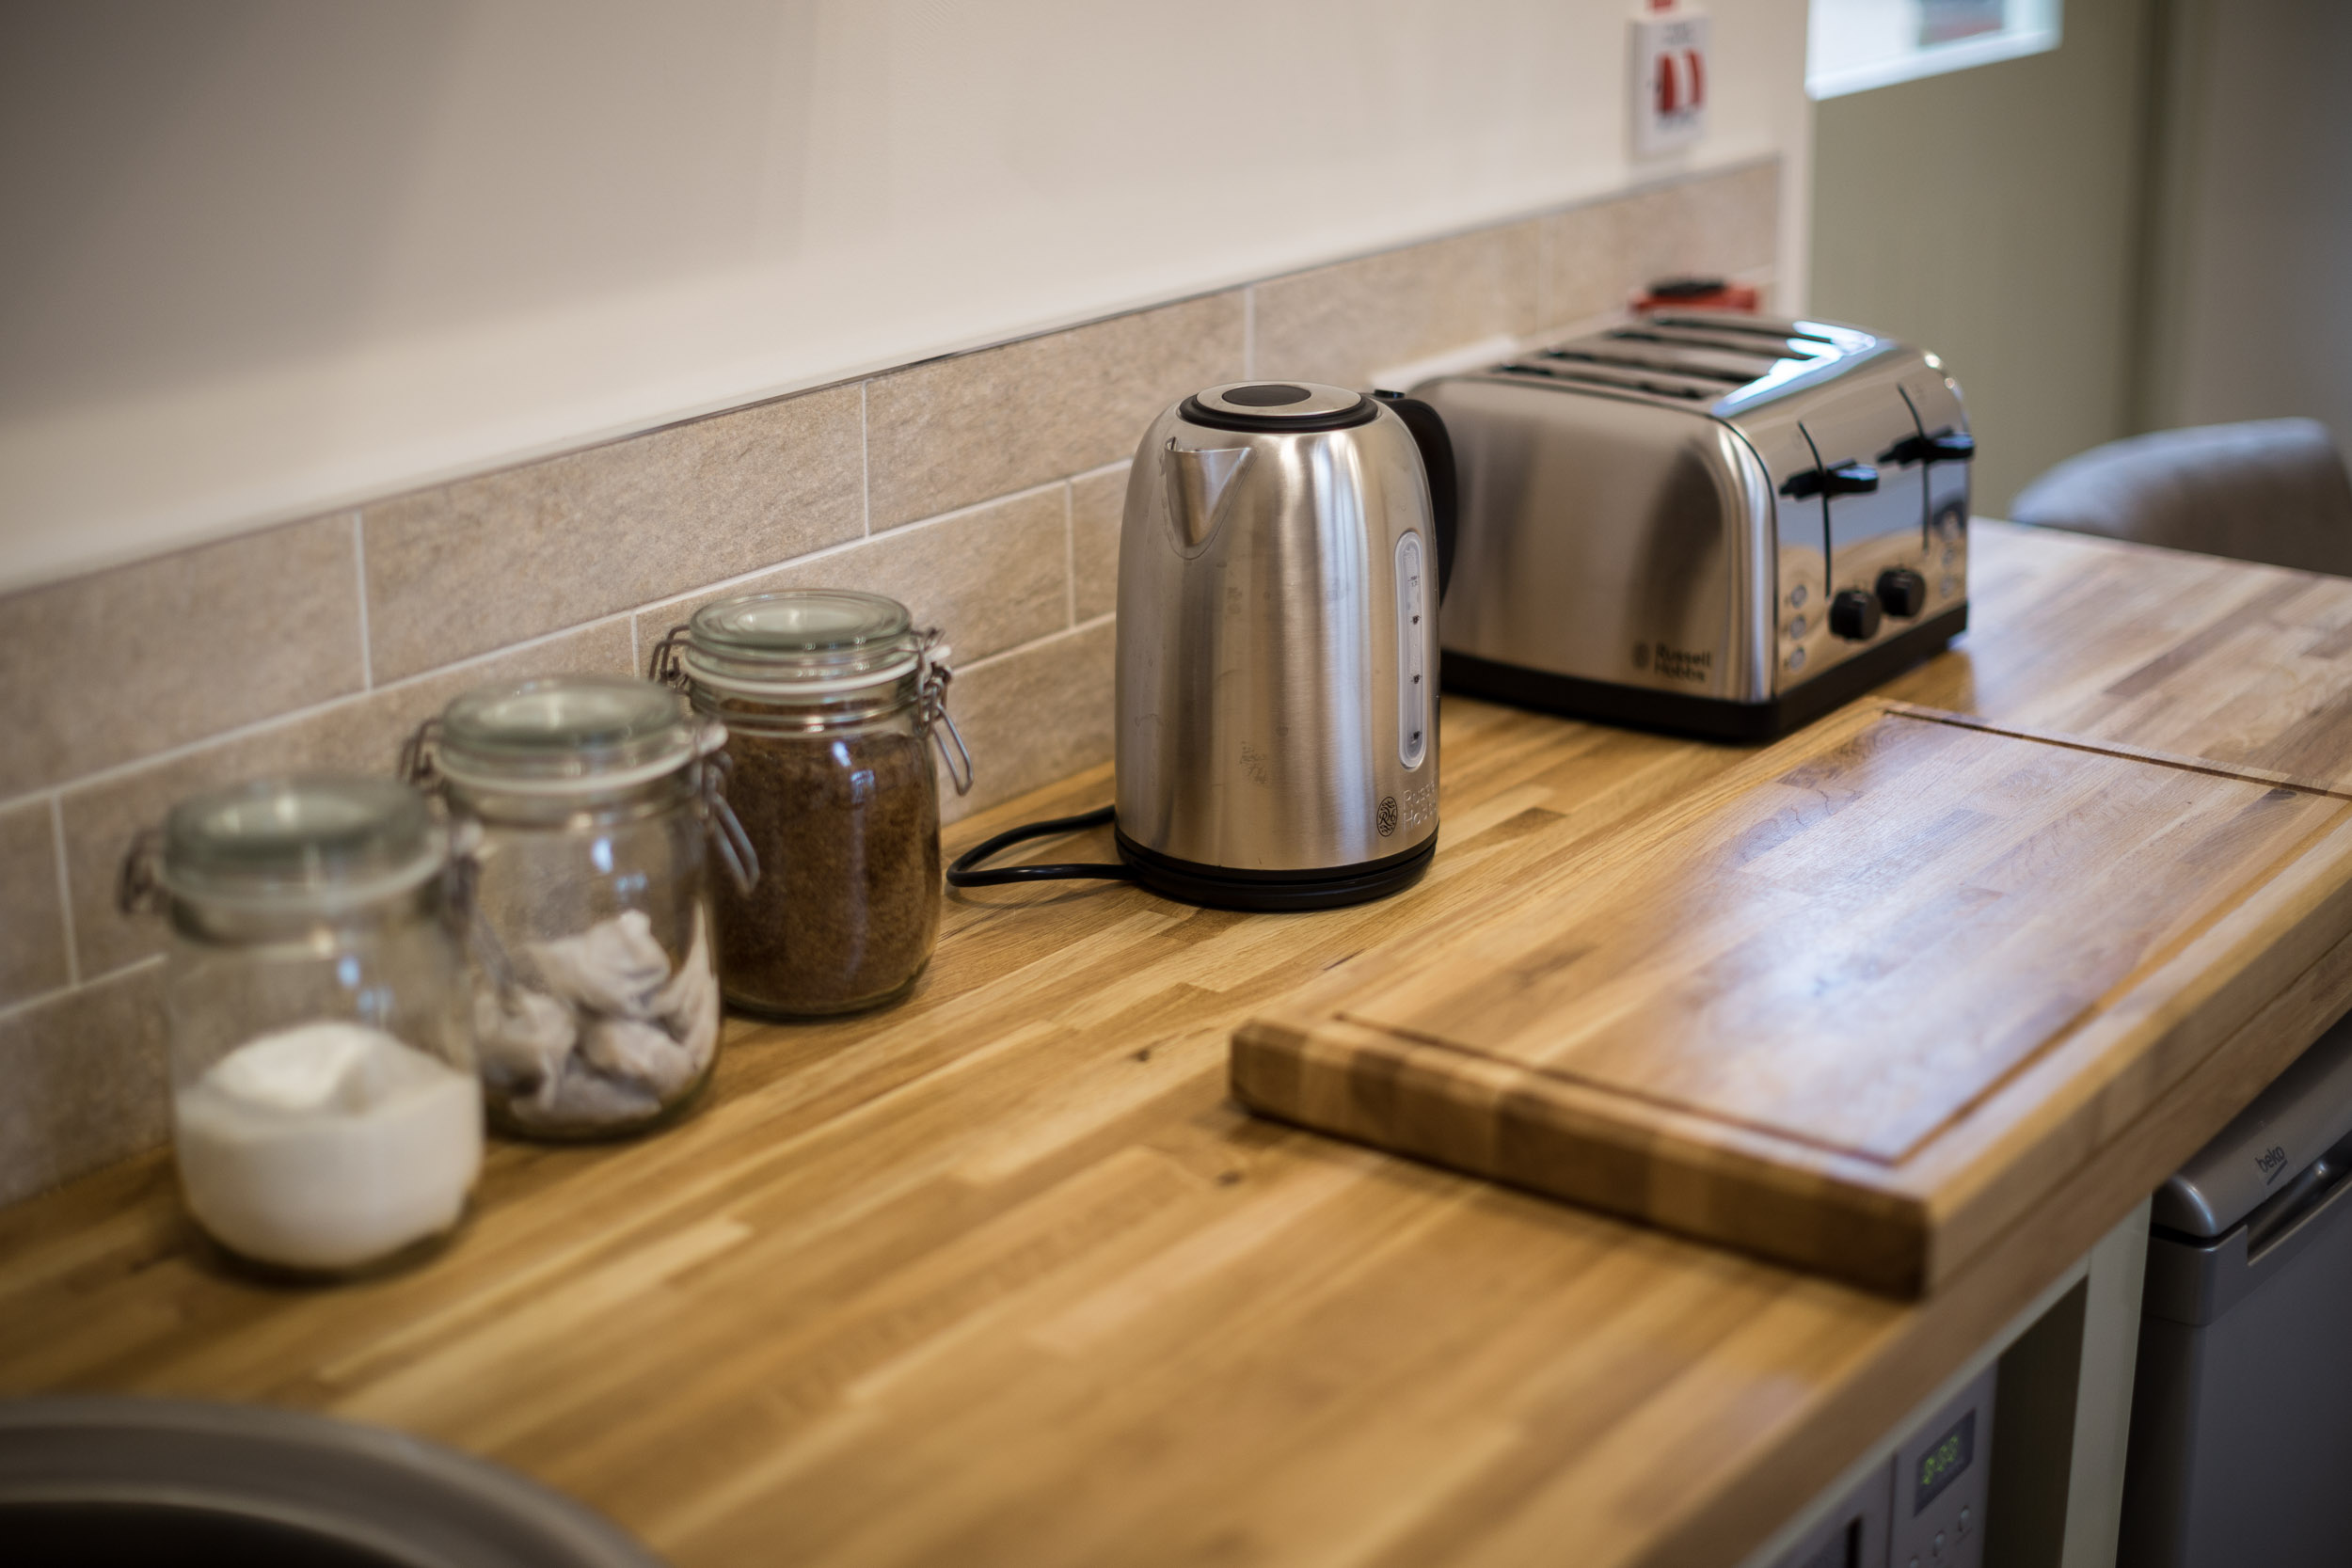 Basic Kitchen Facilities Provided